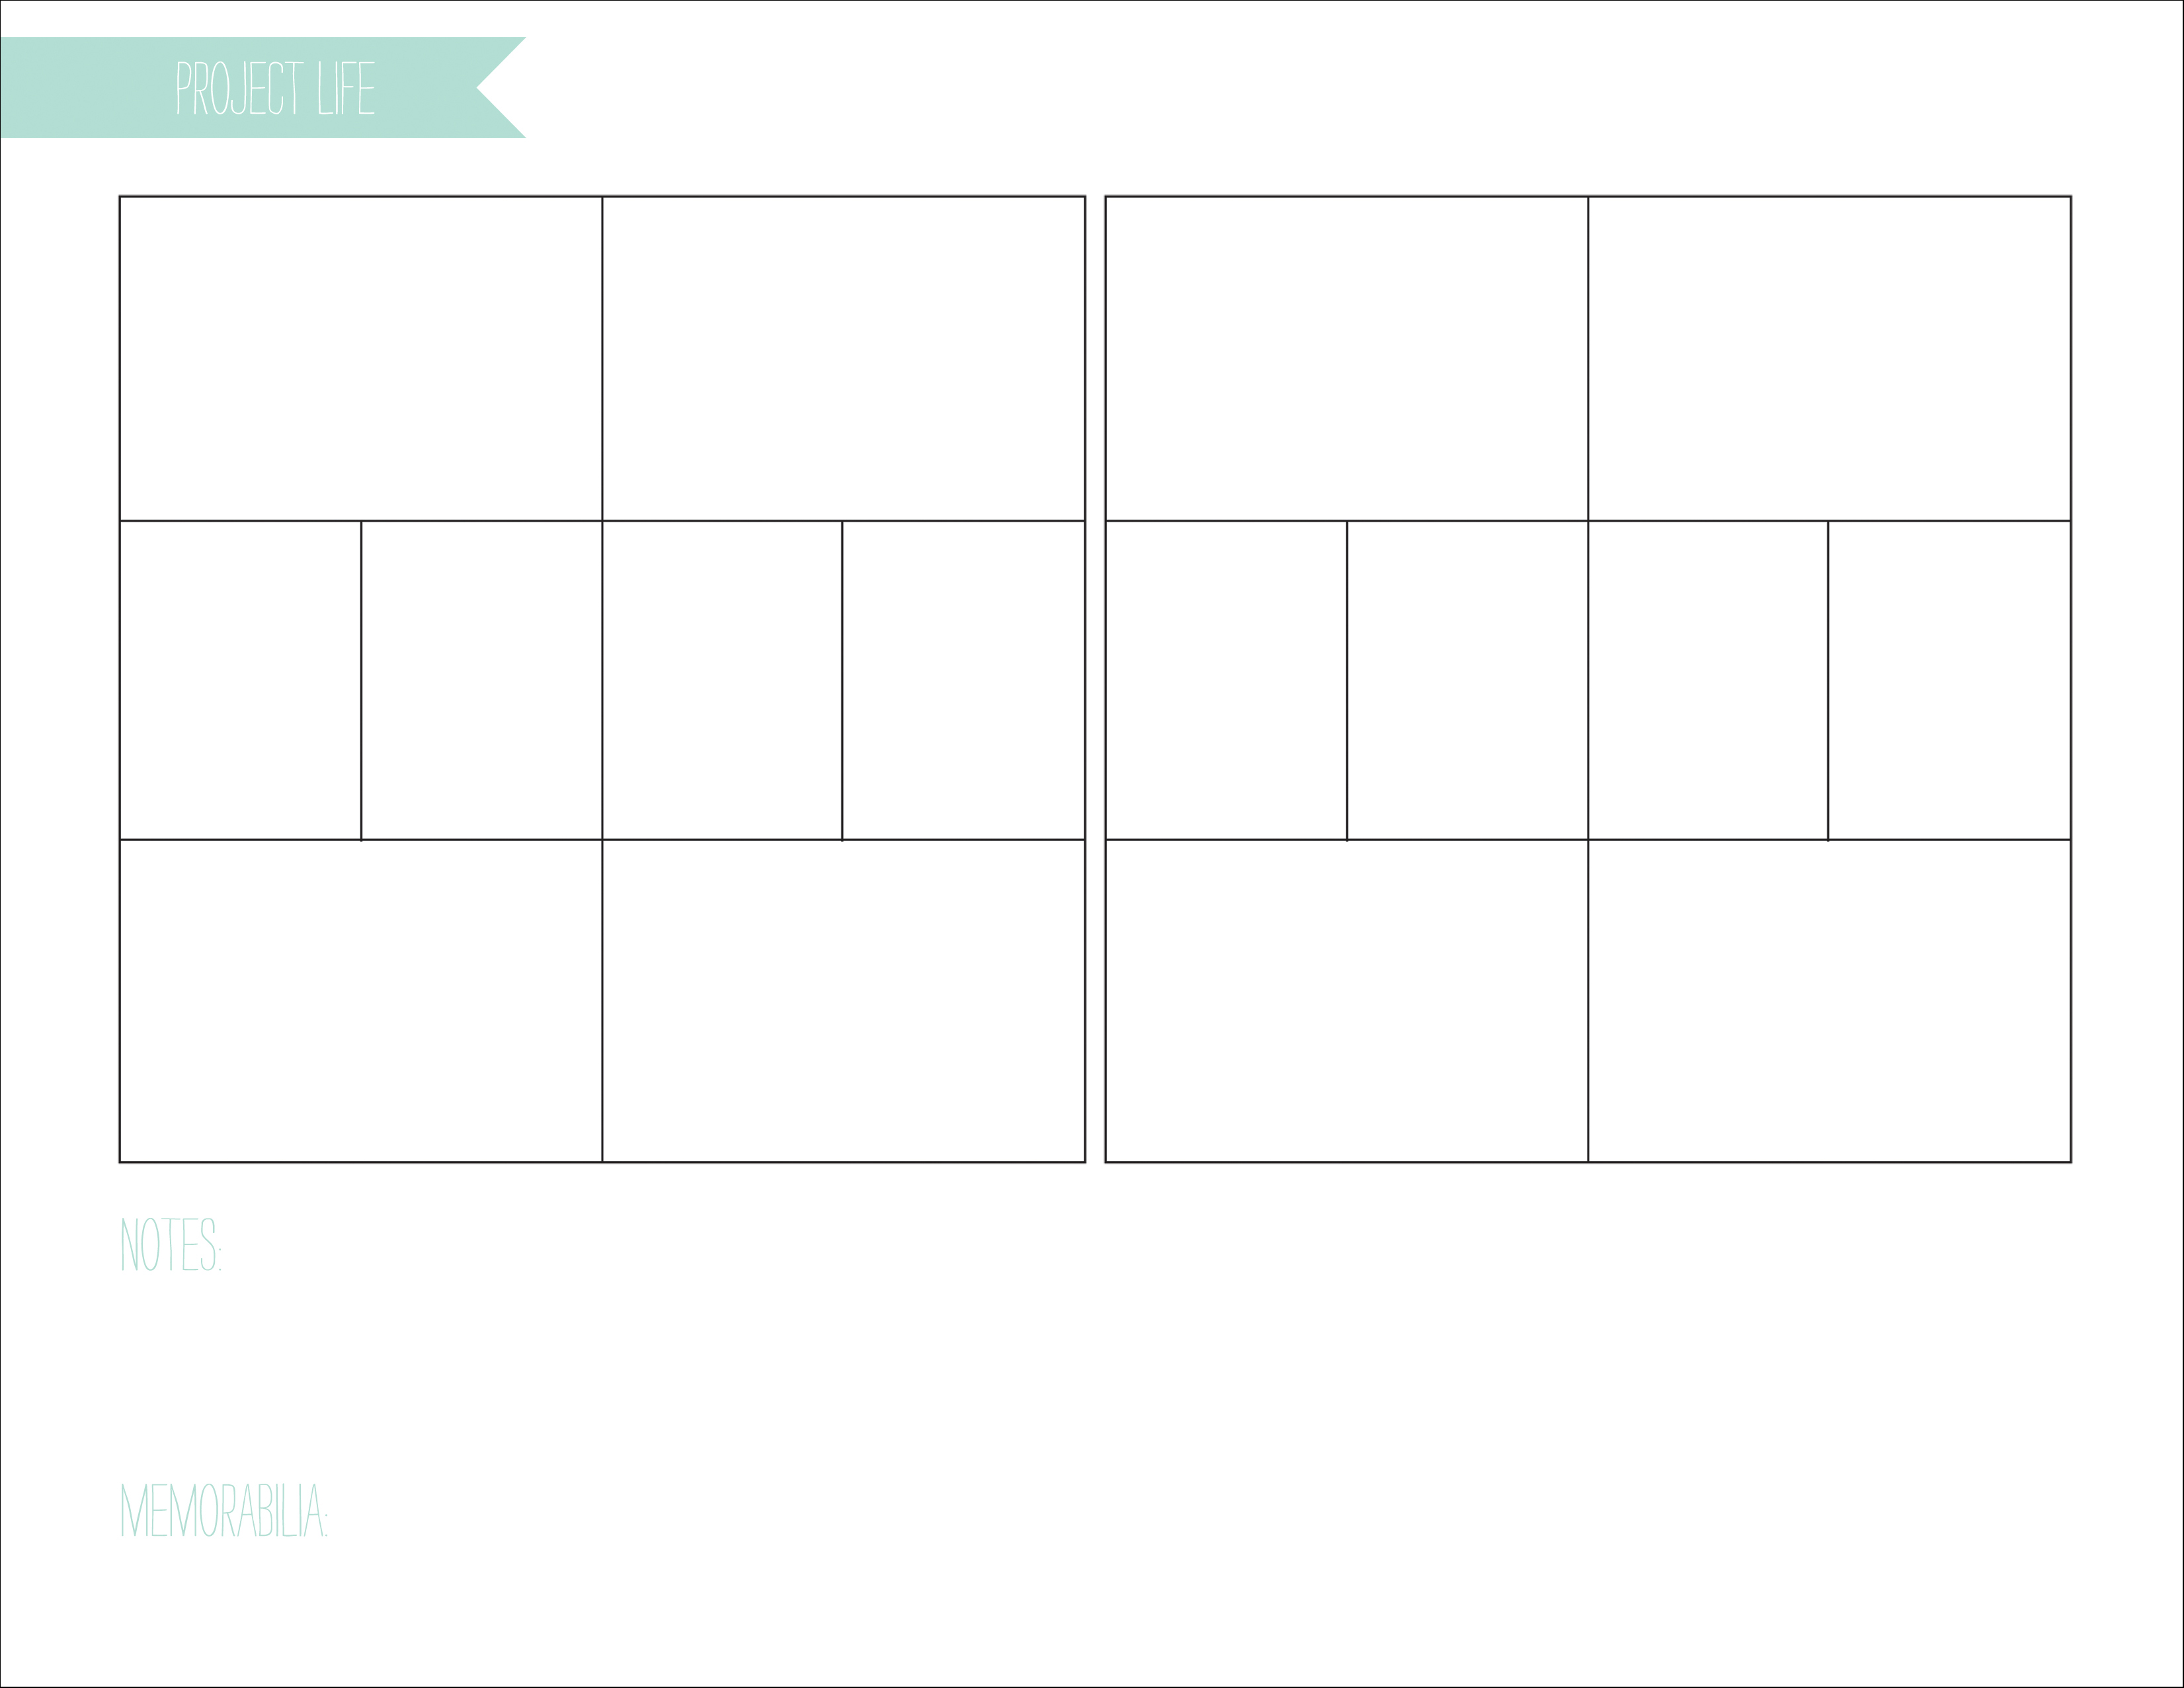 iphoto calendar templates - project life planning all for the memories